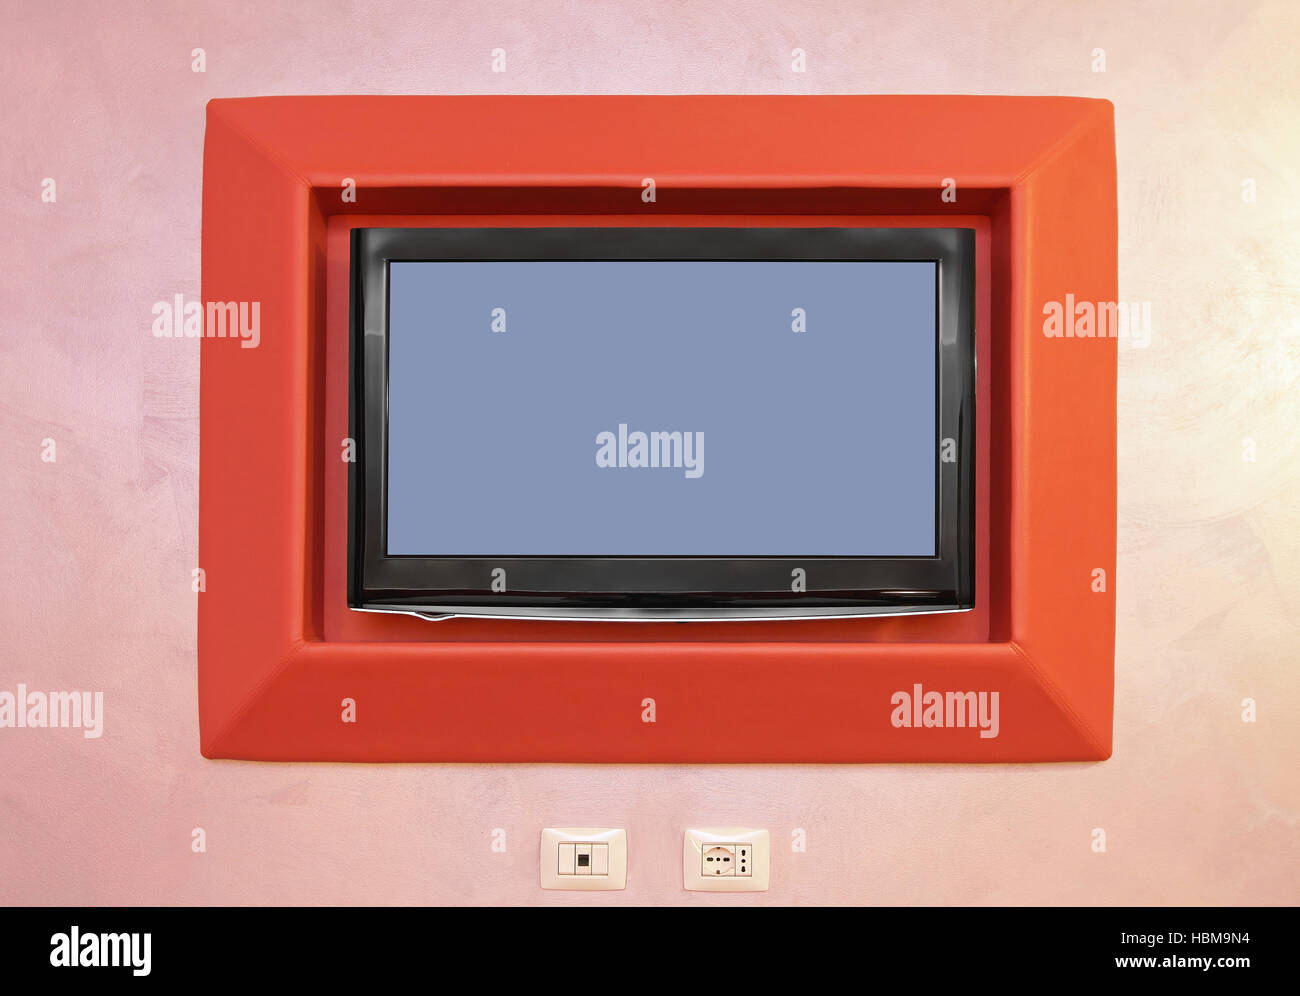 tv monitor wall stockfotos tv monitor wall bilder alamy. Black Bedroom Furniture Sets. Home Design Ideas